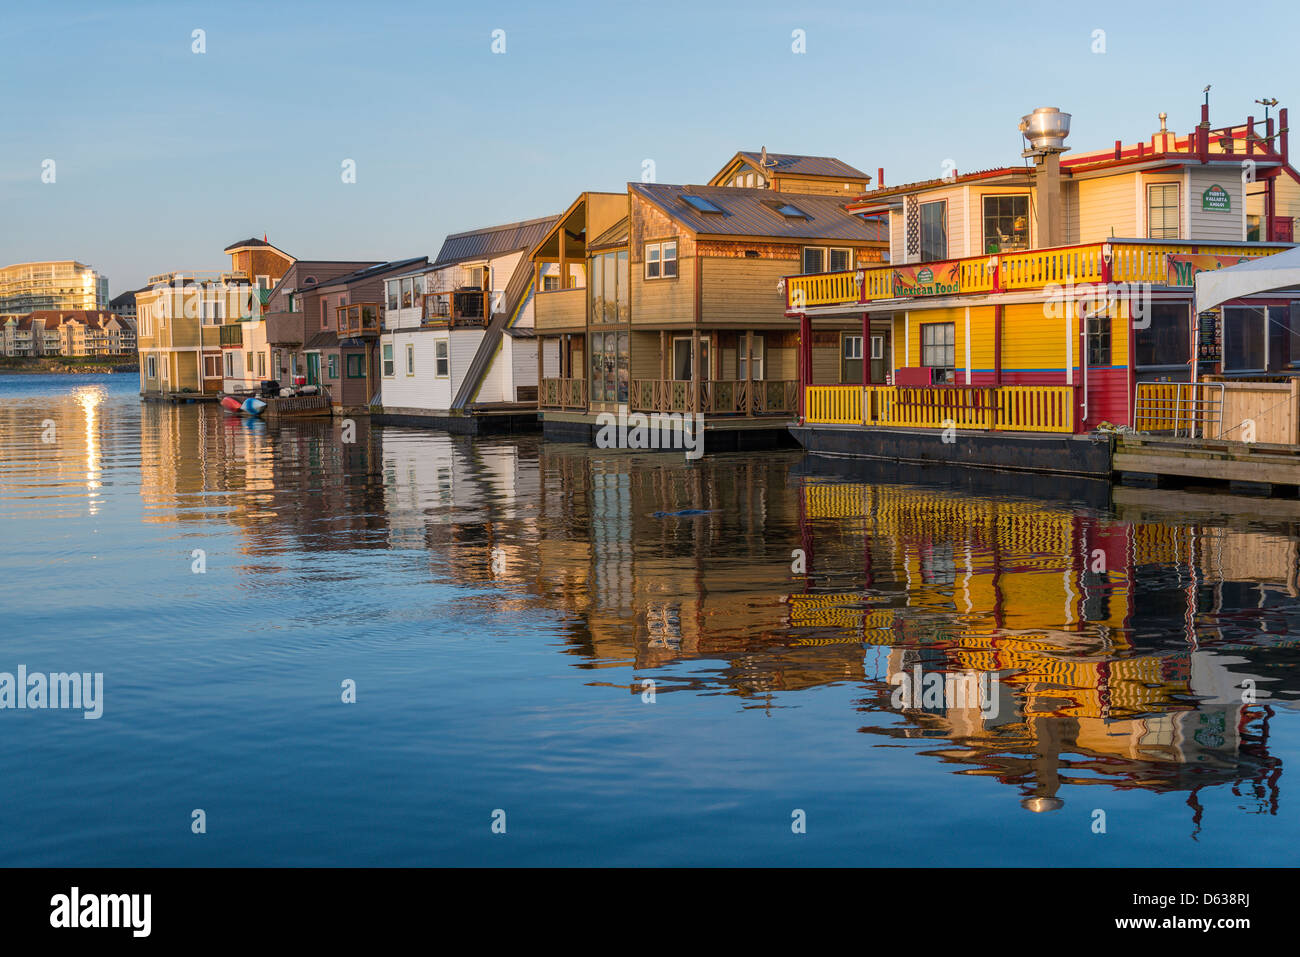 Floating homes, - Stock Image